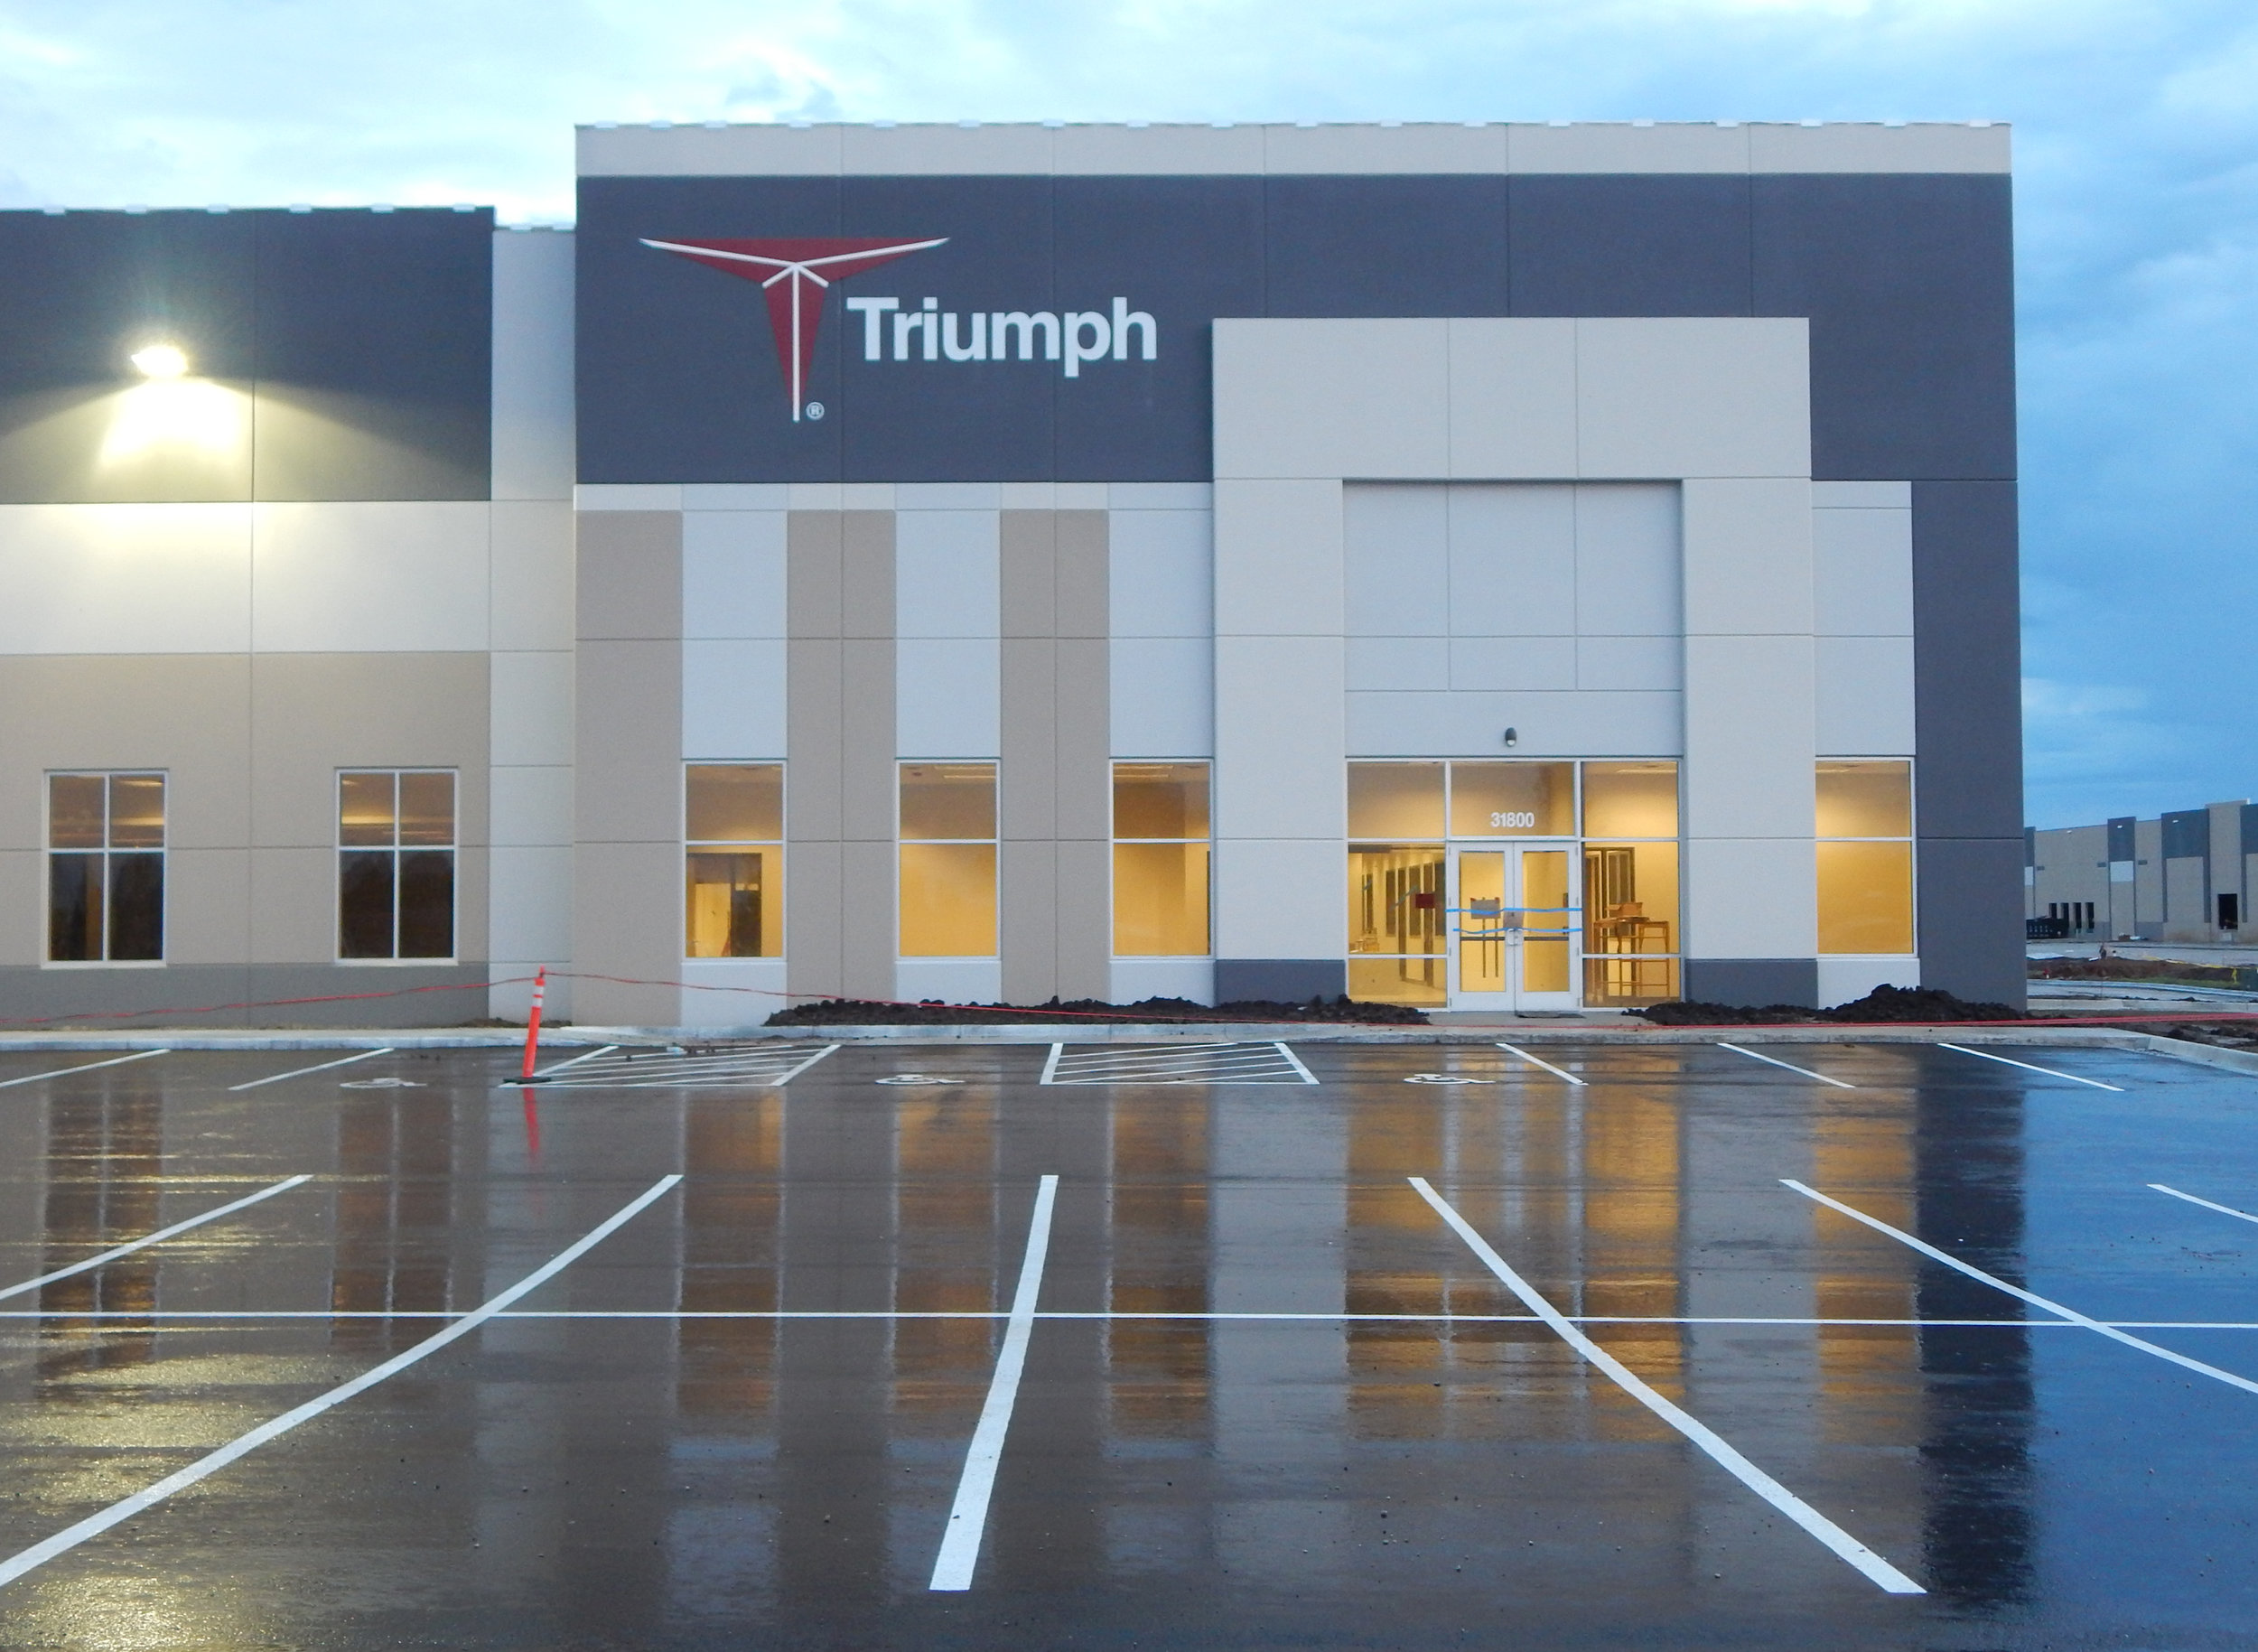 Triumph's new Small and Medium Parts Center of Excellence factory is now open at Logistics Park Kansas City in Edgerton.